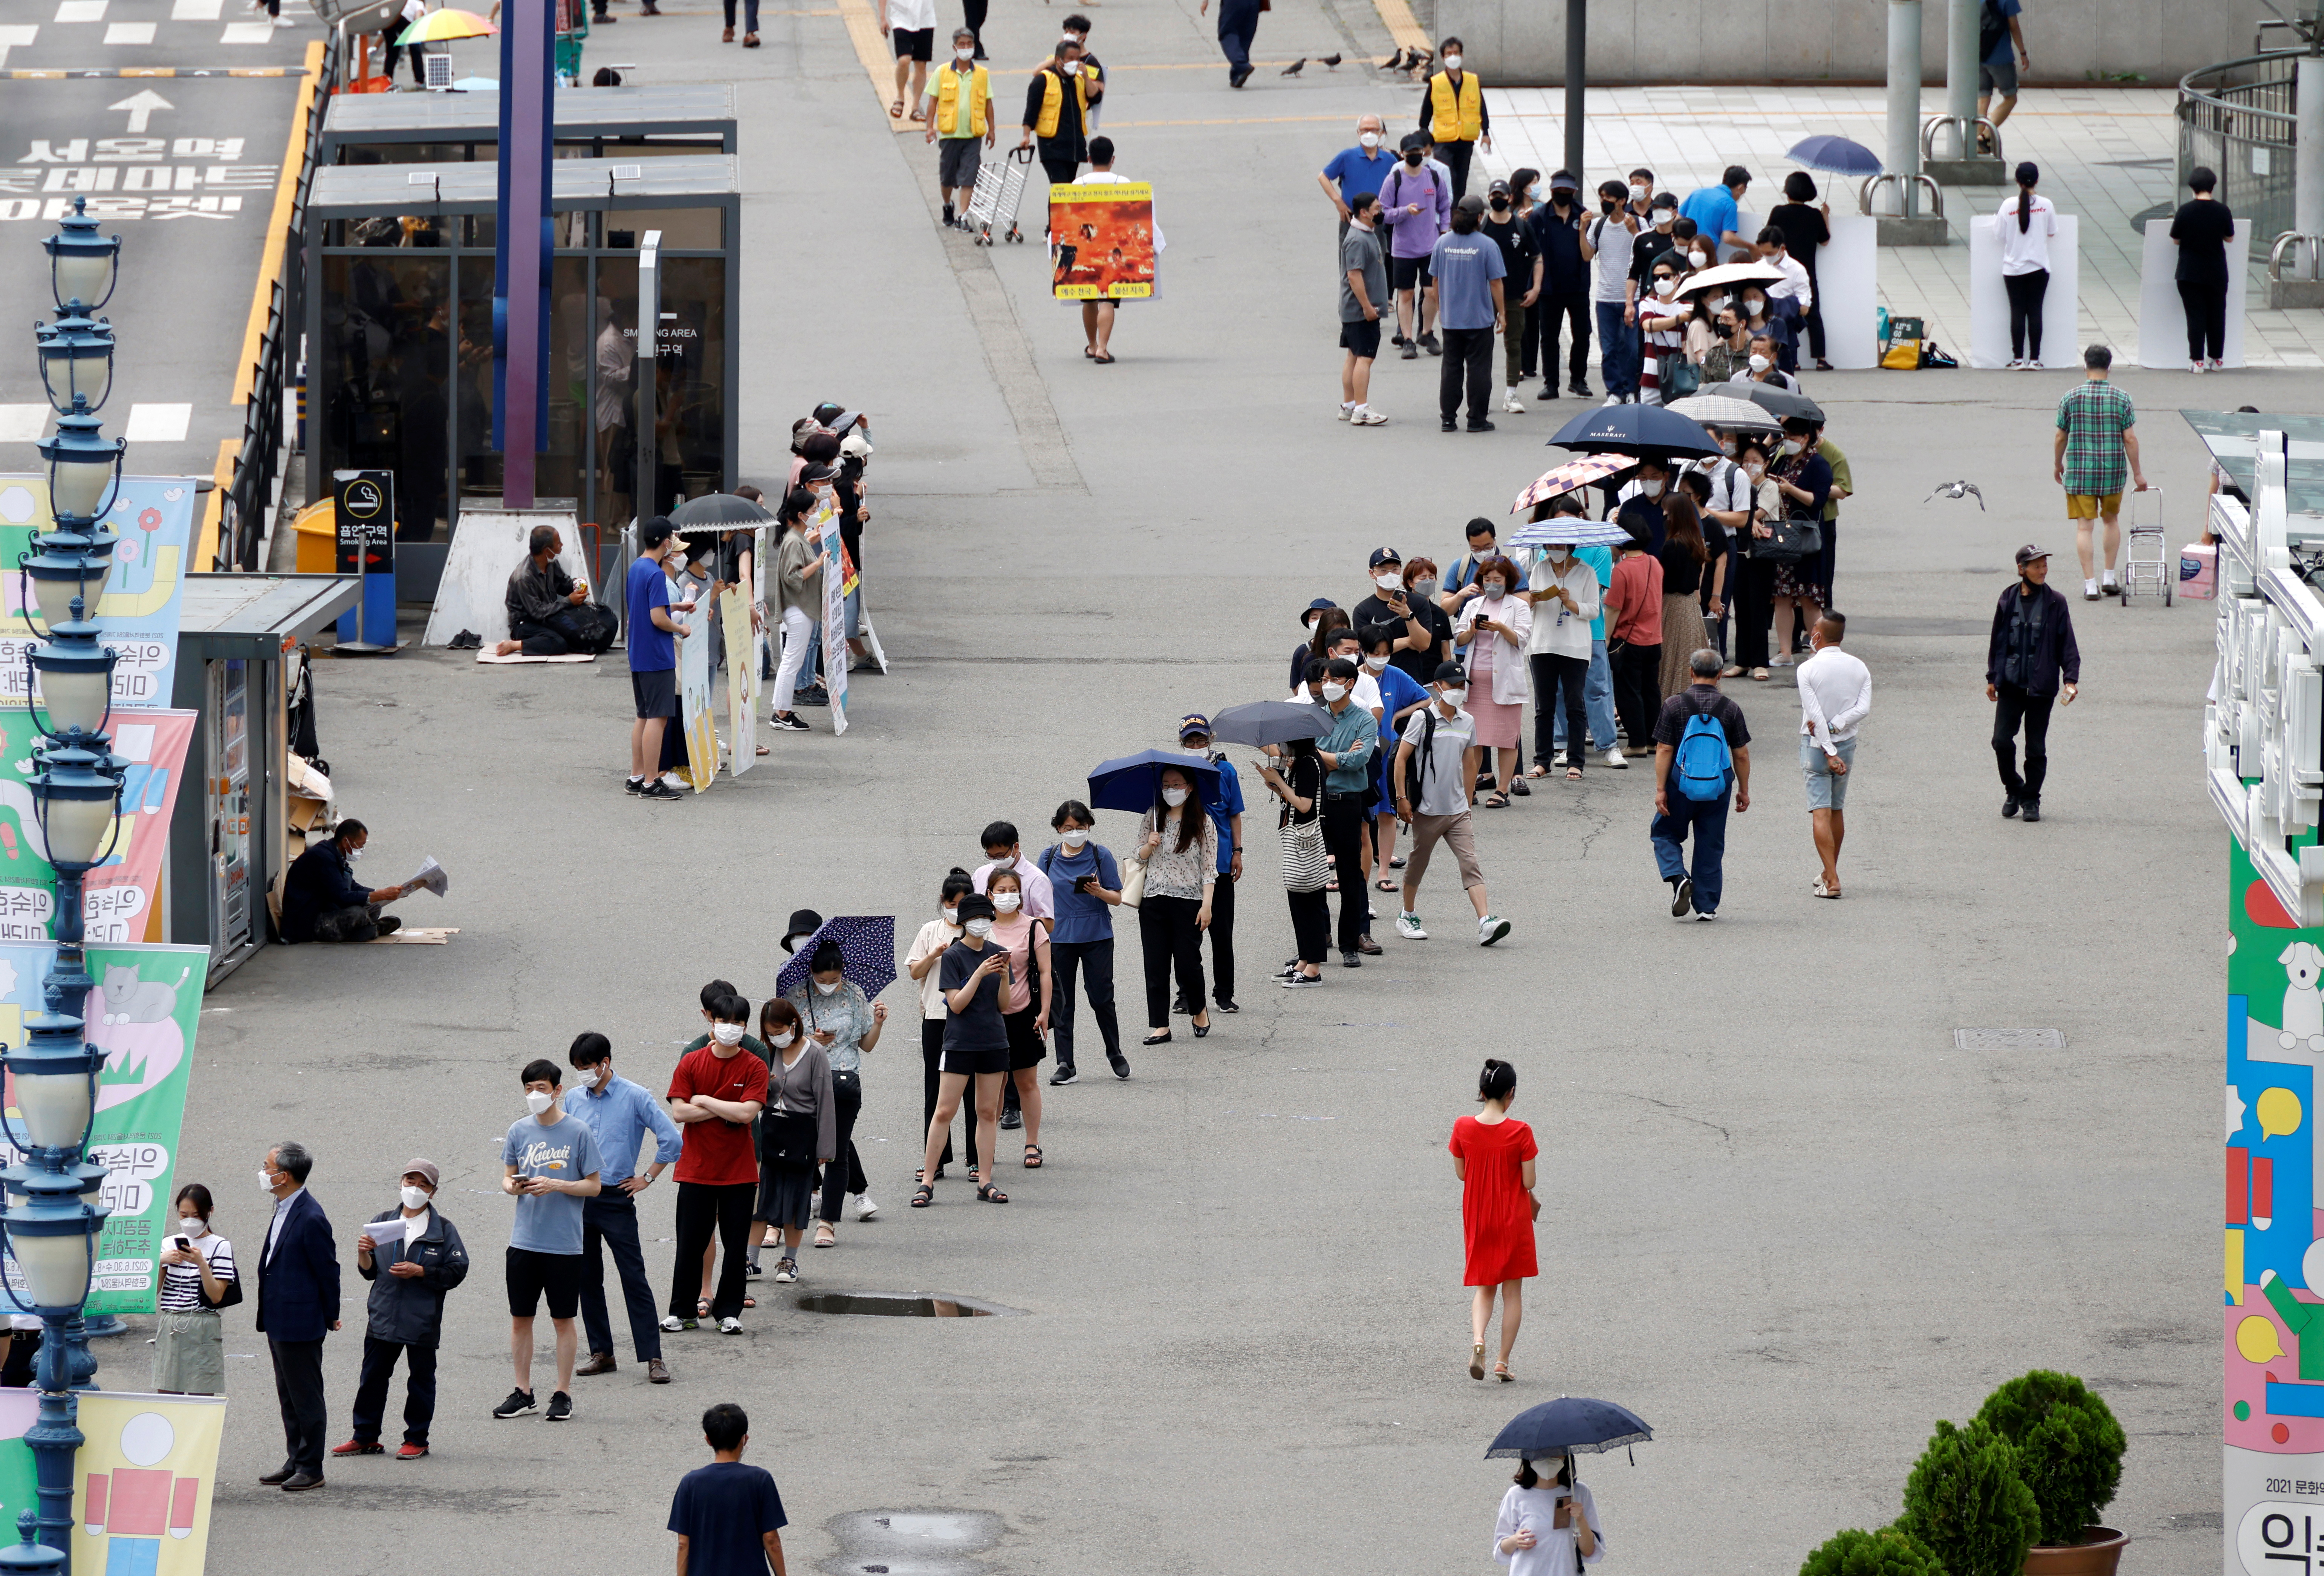 People wait in line for a coronavirus disease (COVID-19) test at a testing site which is temporarily set up at a railway station in Seoul, South Korea, July 7, 2021.  REUTERS/ Heo Ran